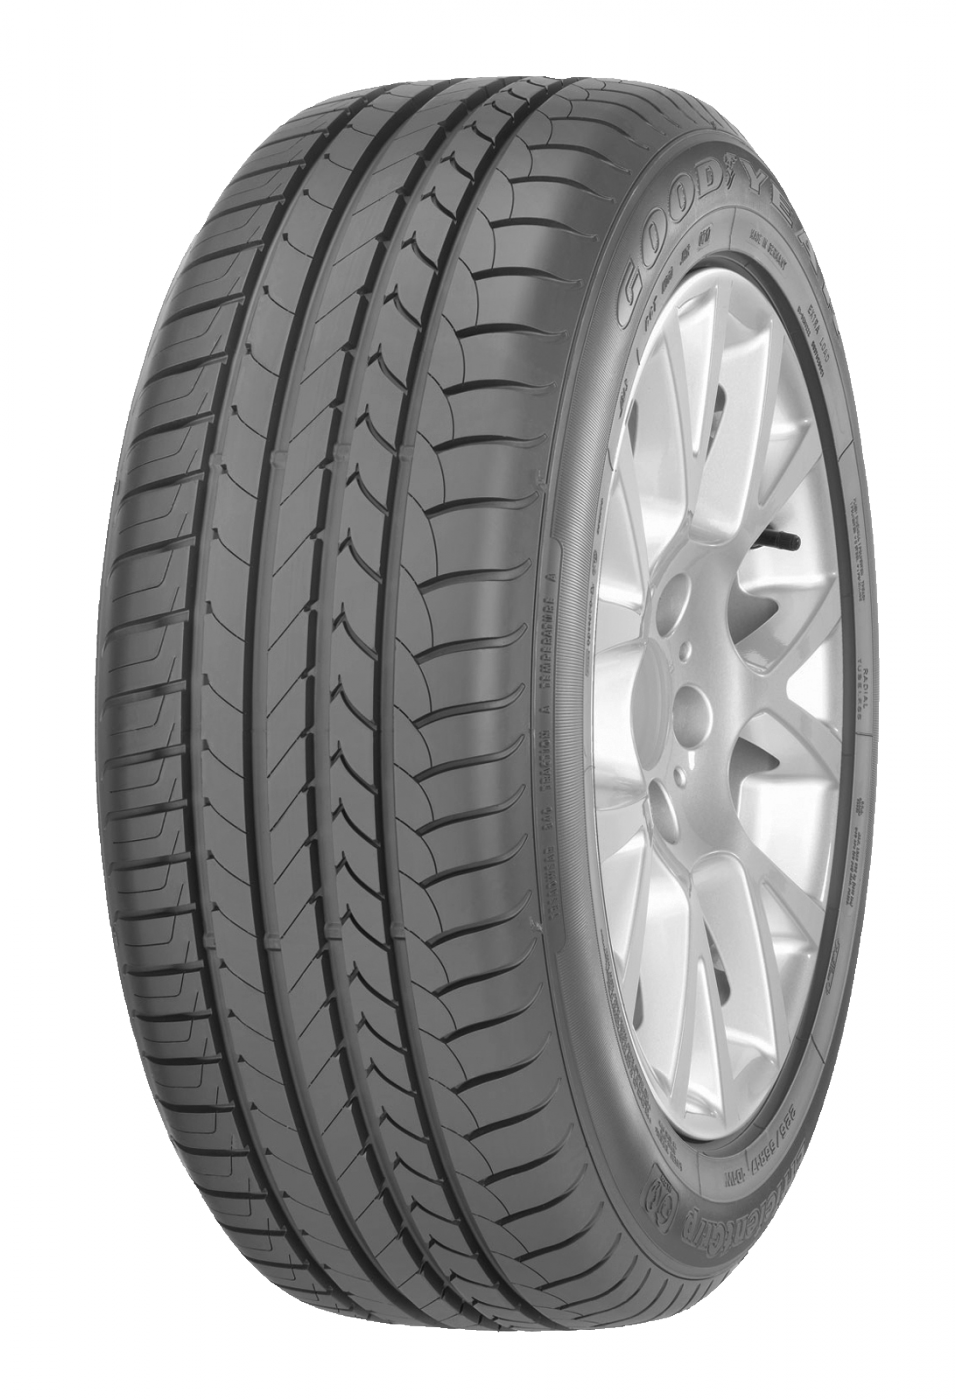 Goodyear 205/60/16  W 92 EFFICIENTGRIP FP  (BMW)